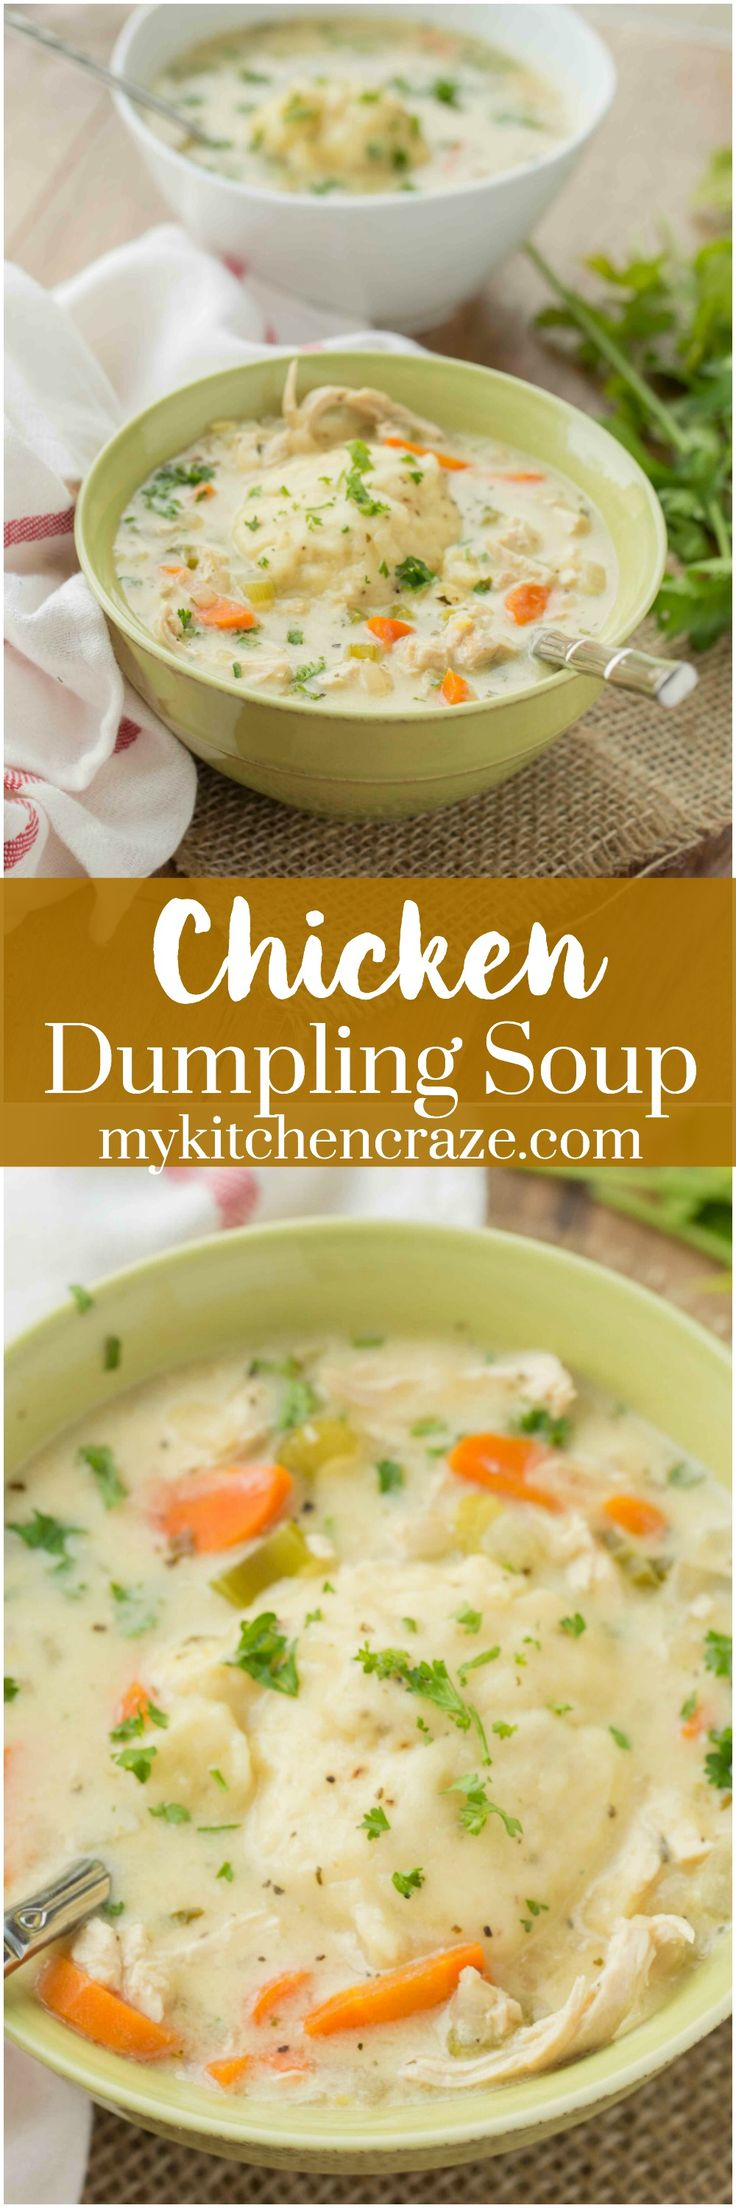 Chicken Dumpling Soup plus a Recipe Video - My Kitchen Craze